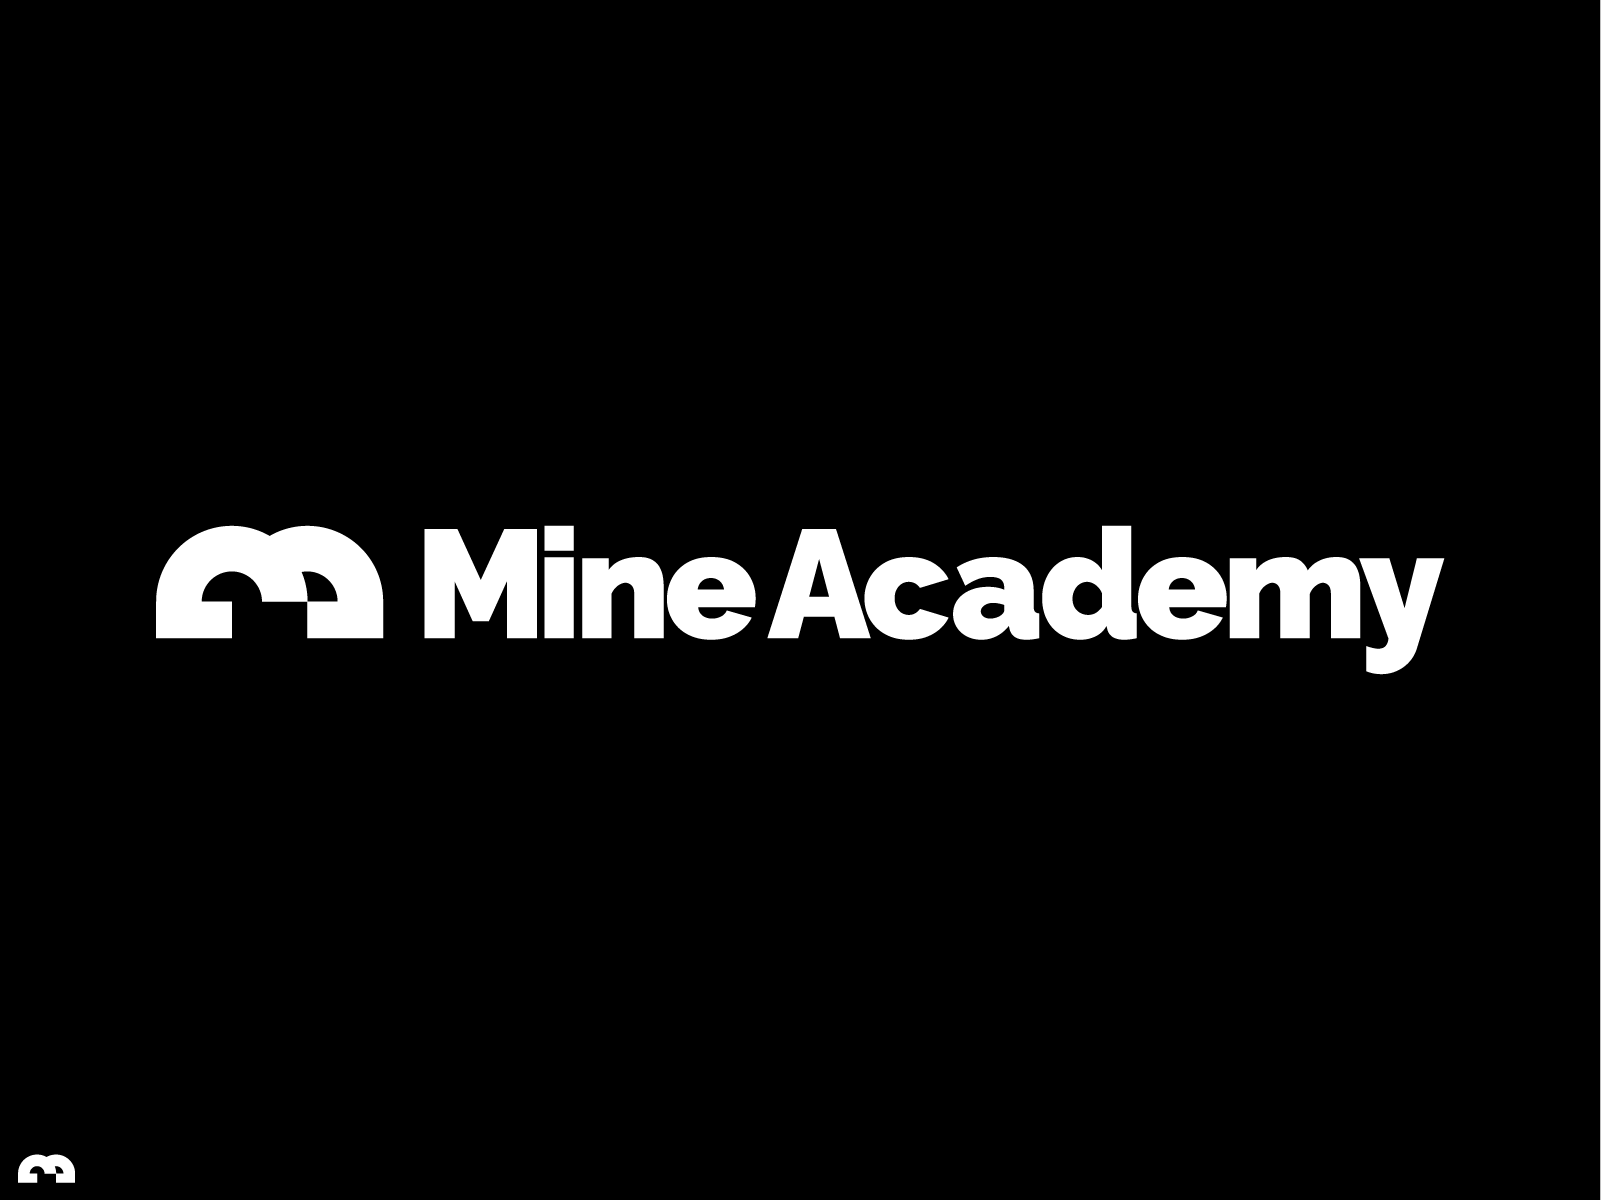 MineAcademy is an online course platform to help new developers learn how to code Minecraft plugins.